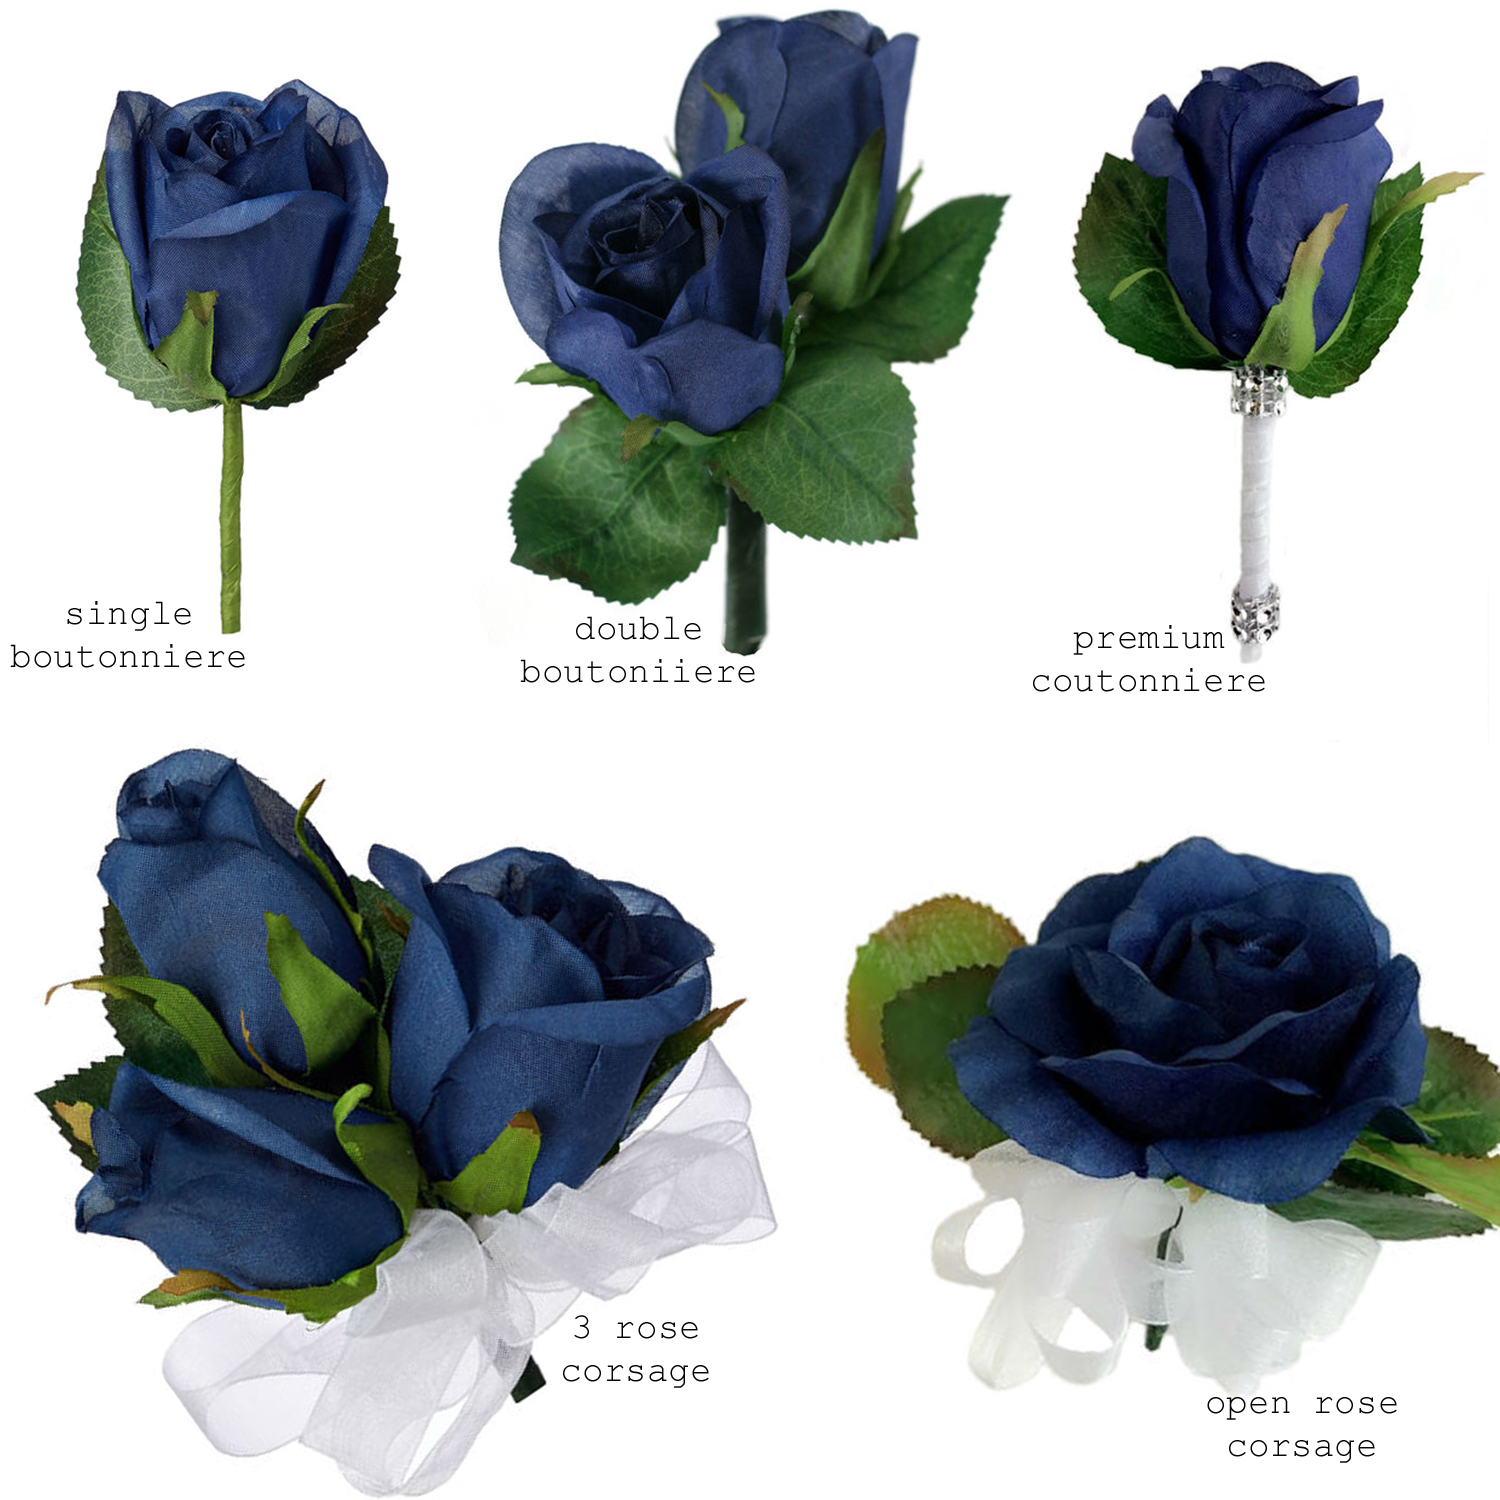 navy-rose-boutonniere-corsage-artificial-wedding-flowers.jpg